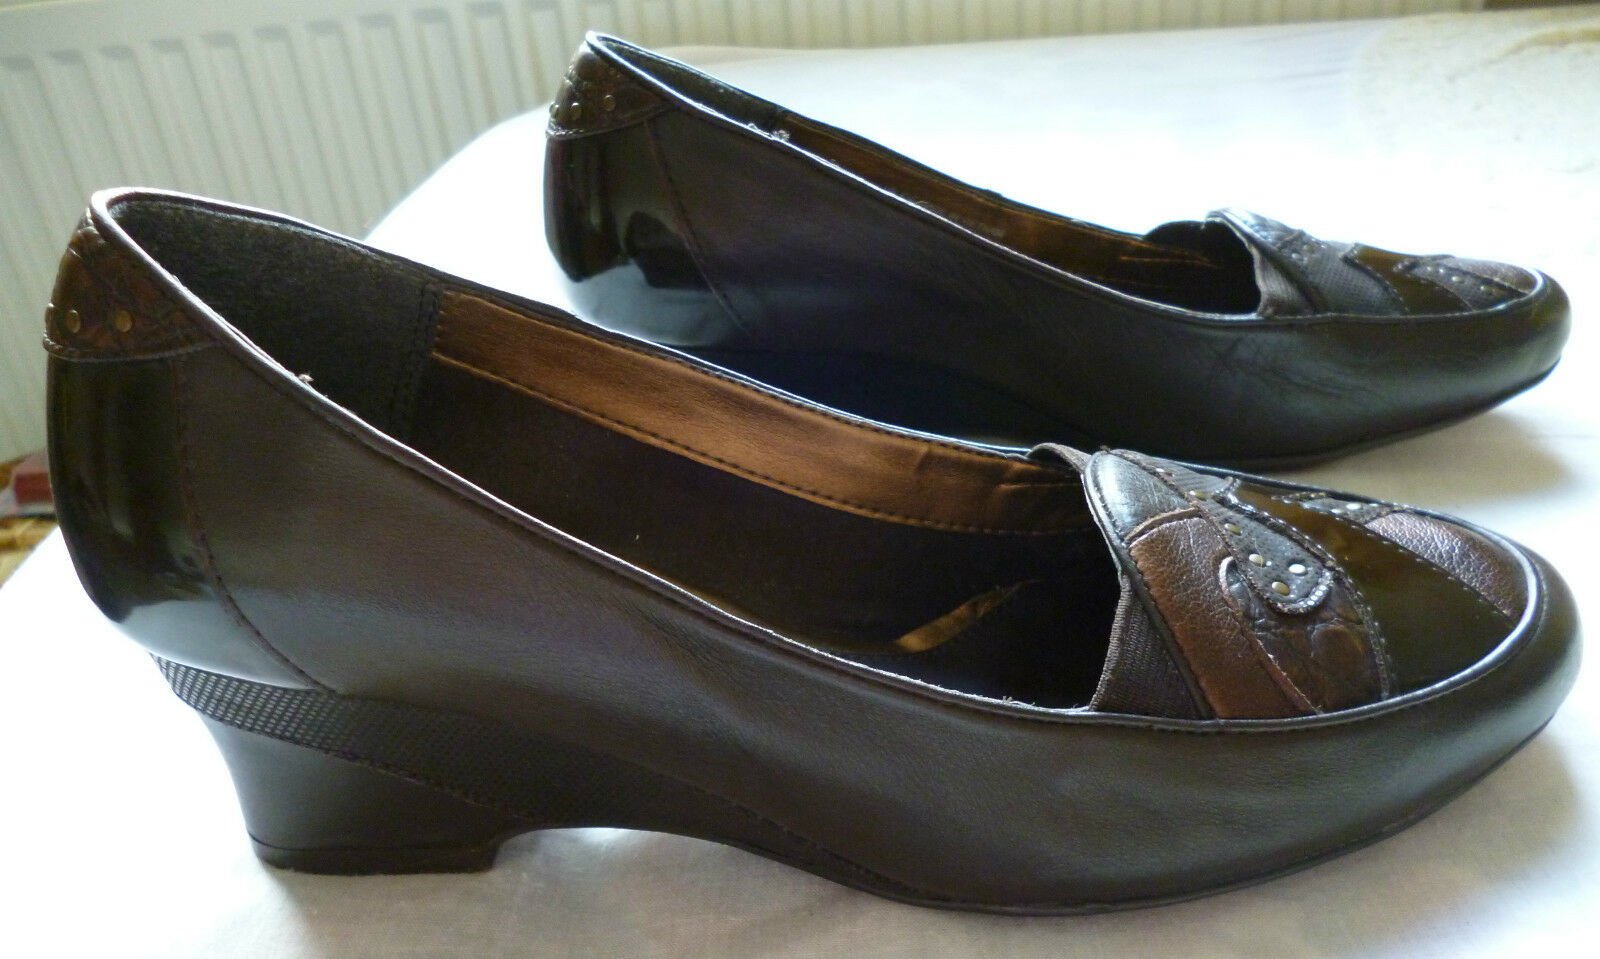 Lady's Brown Leather and patent K Shoes Wedge Heel 4.5/37.5 patchwork detailing